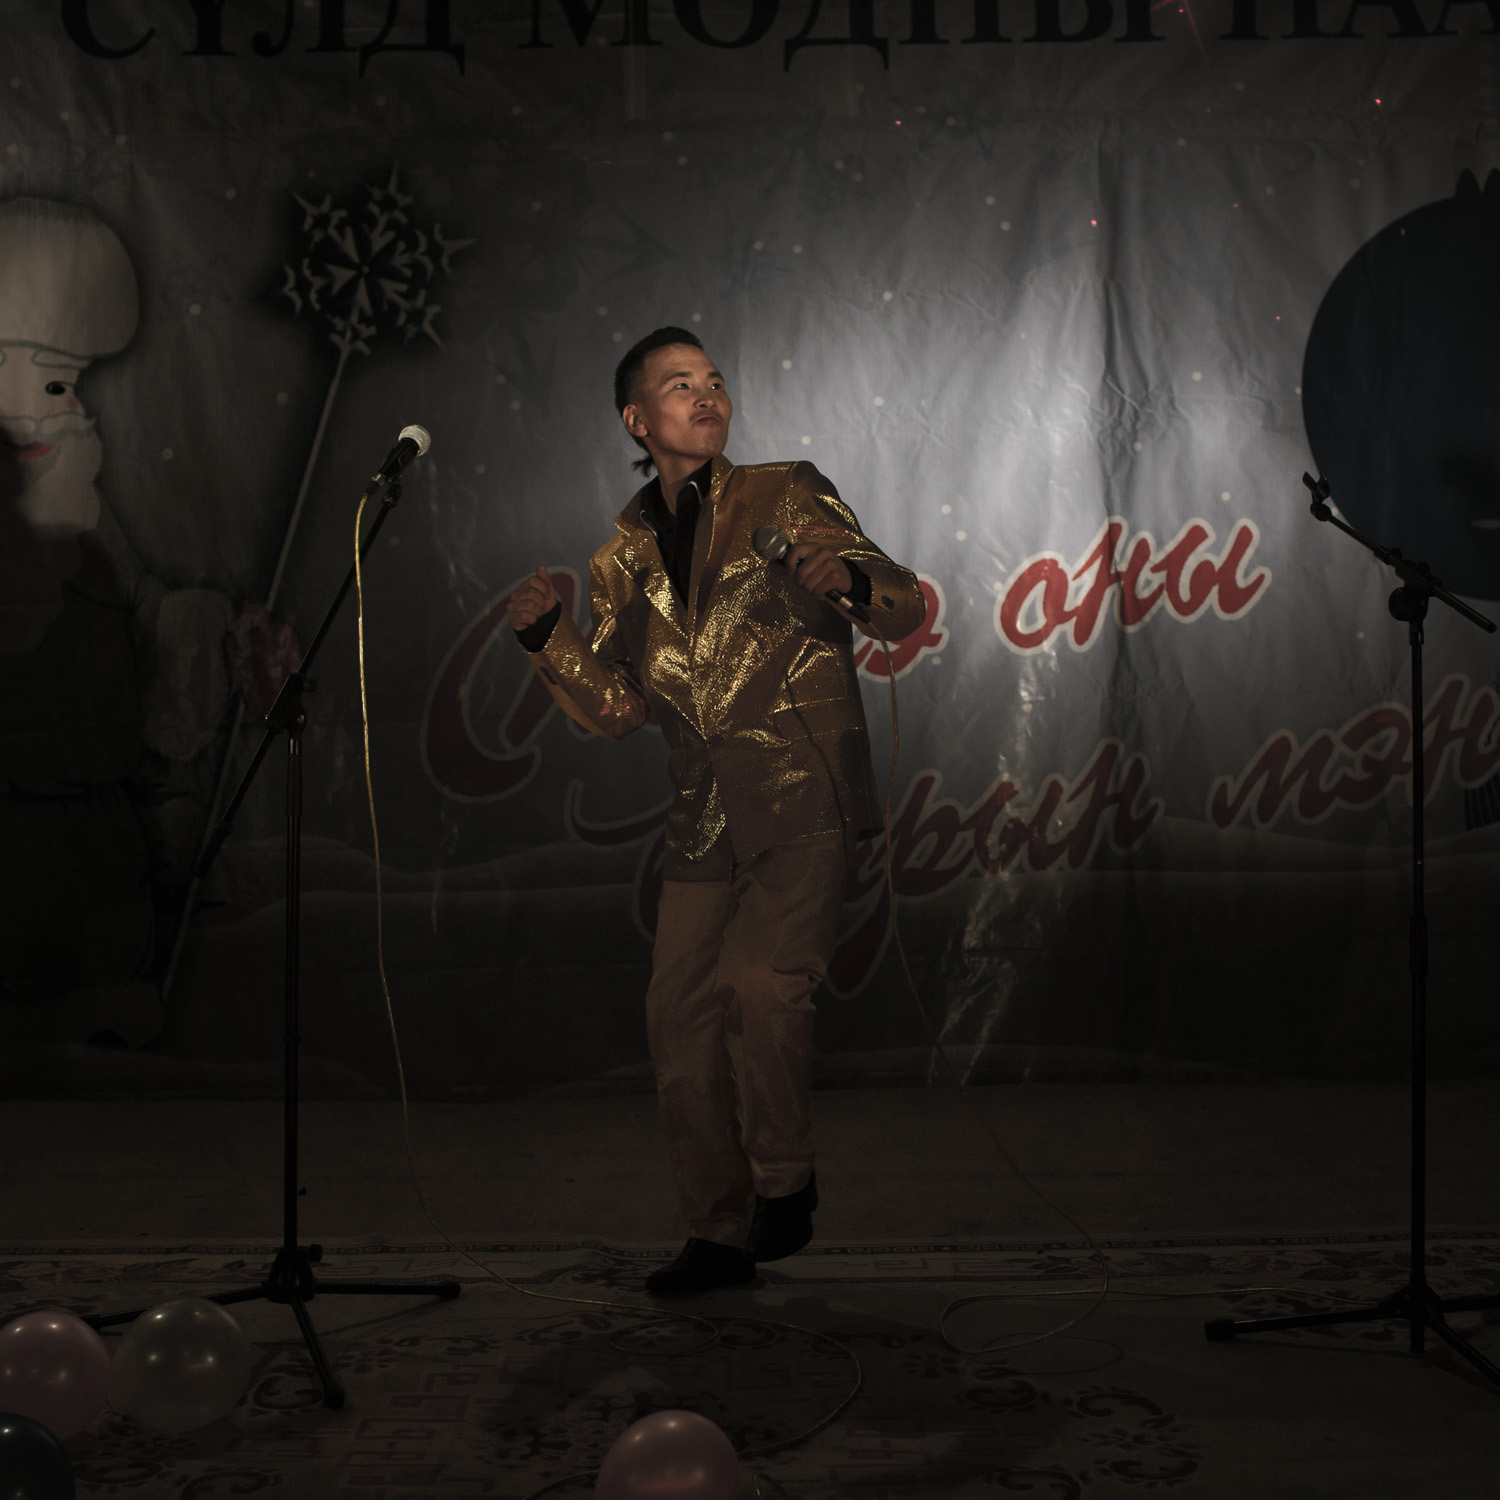 A Mongolian singer performs at a party organized by the Mobicom cellphone company. Mongolia, Gobi, Dalanzadgad, 2013.